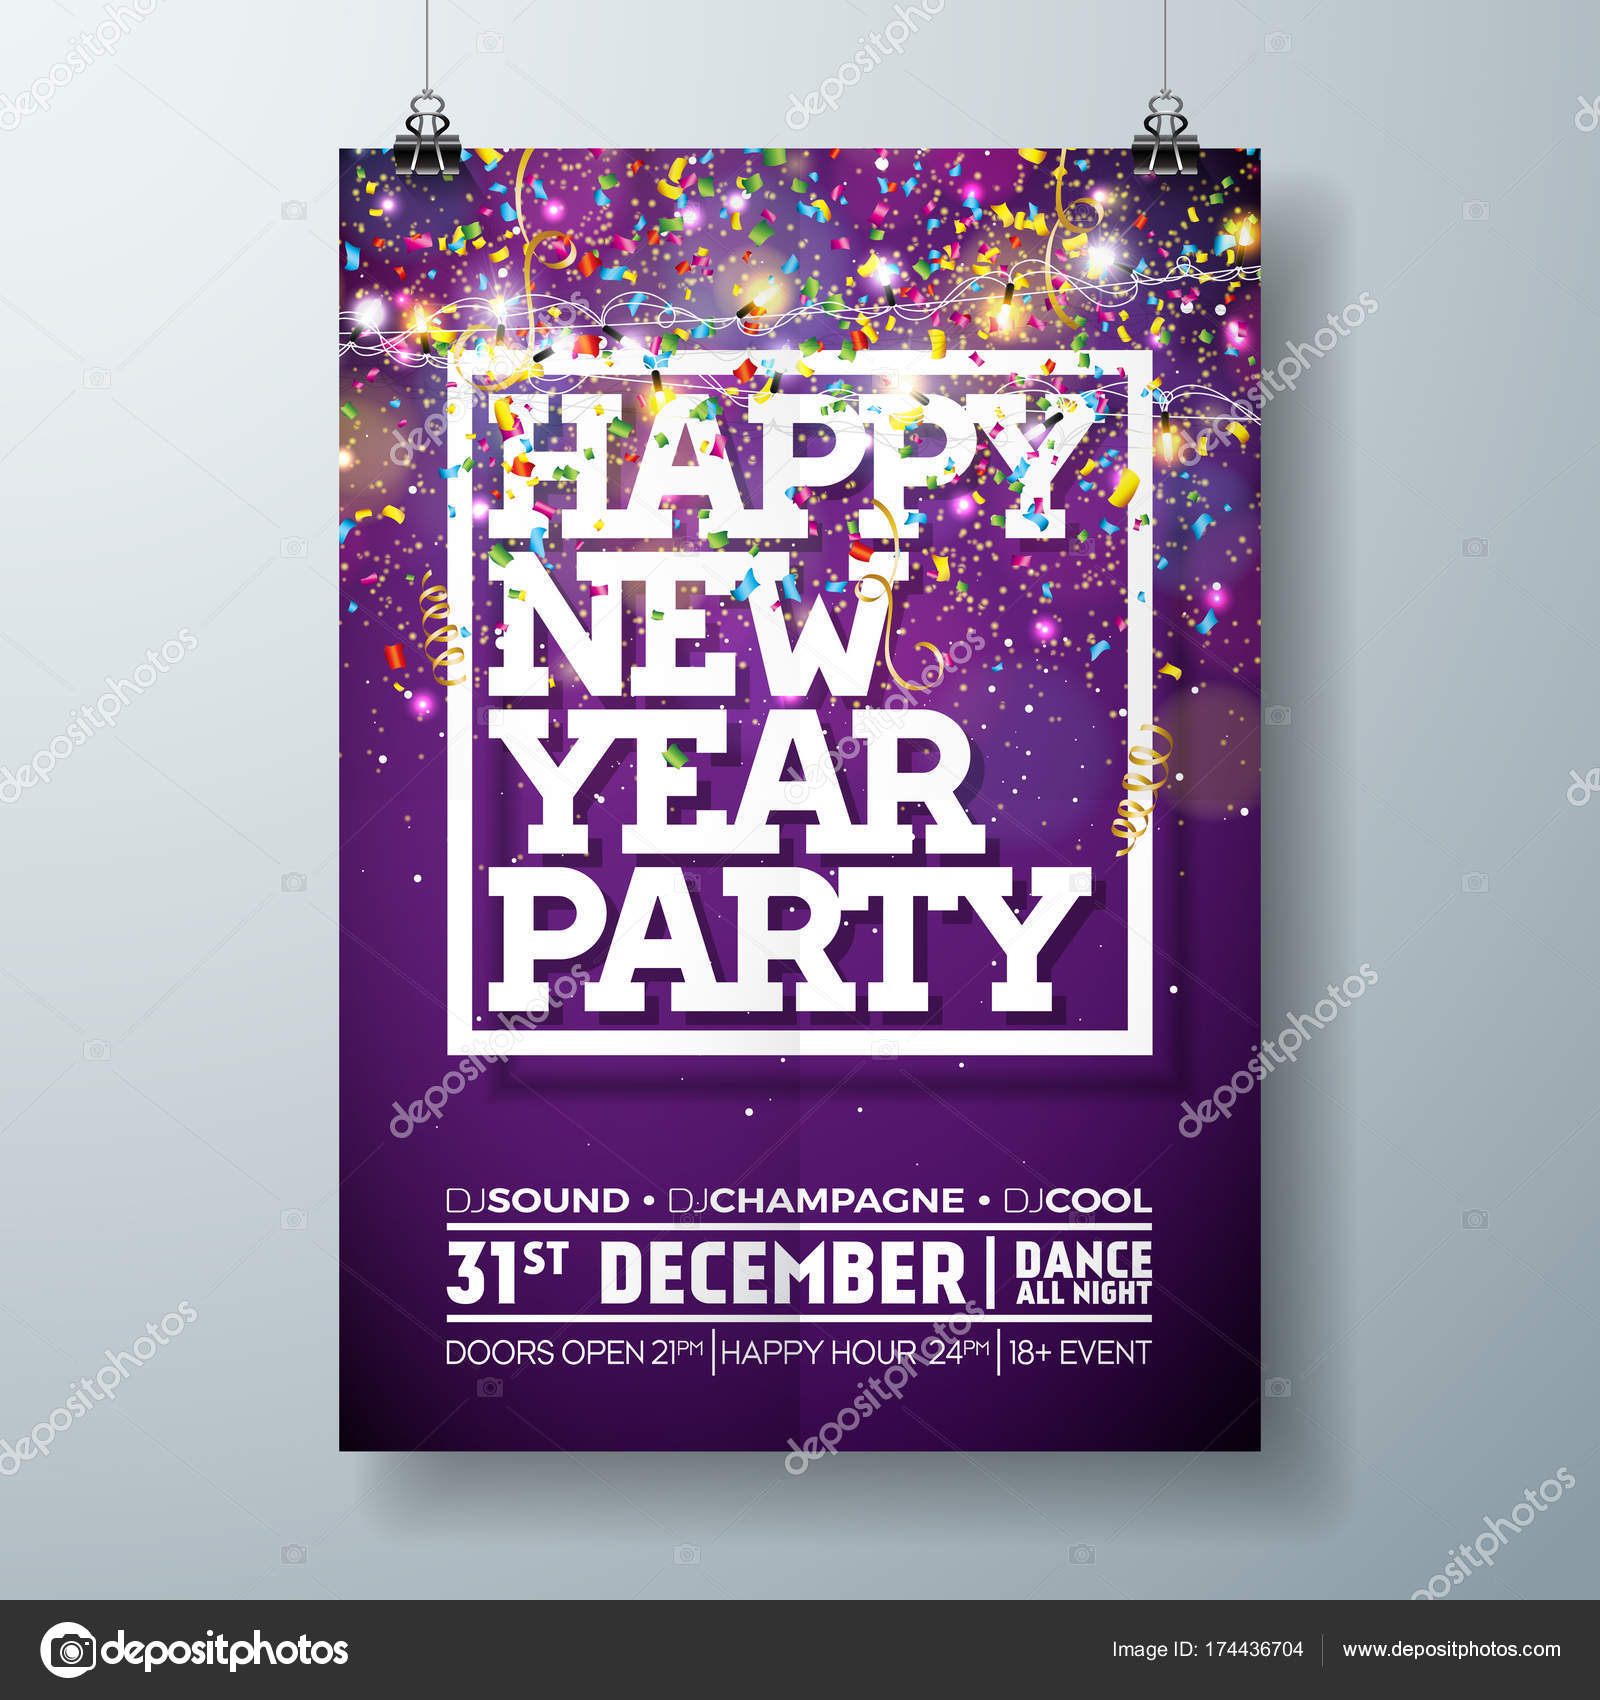 new year party celebration poster template illustration with typography design and falling confetti on shiny colorful